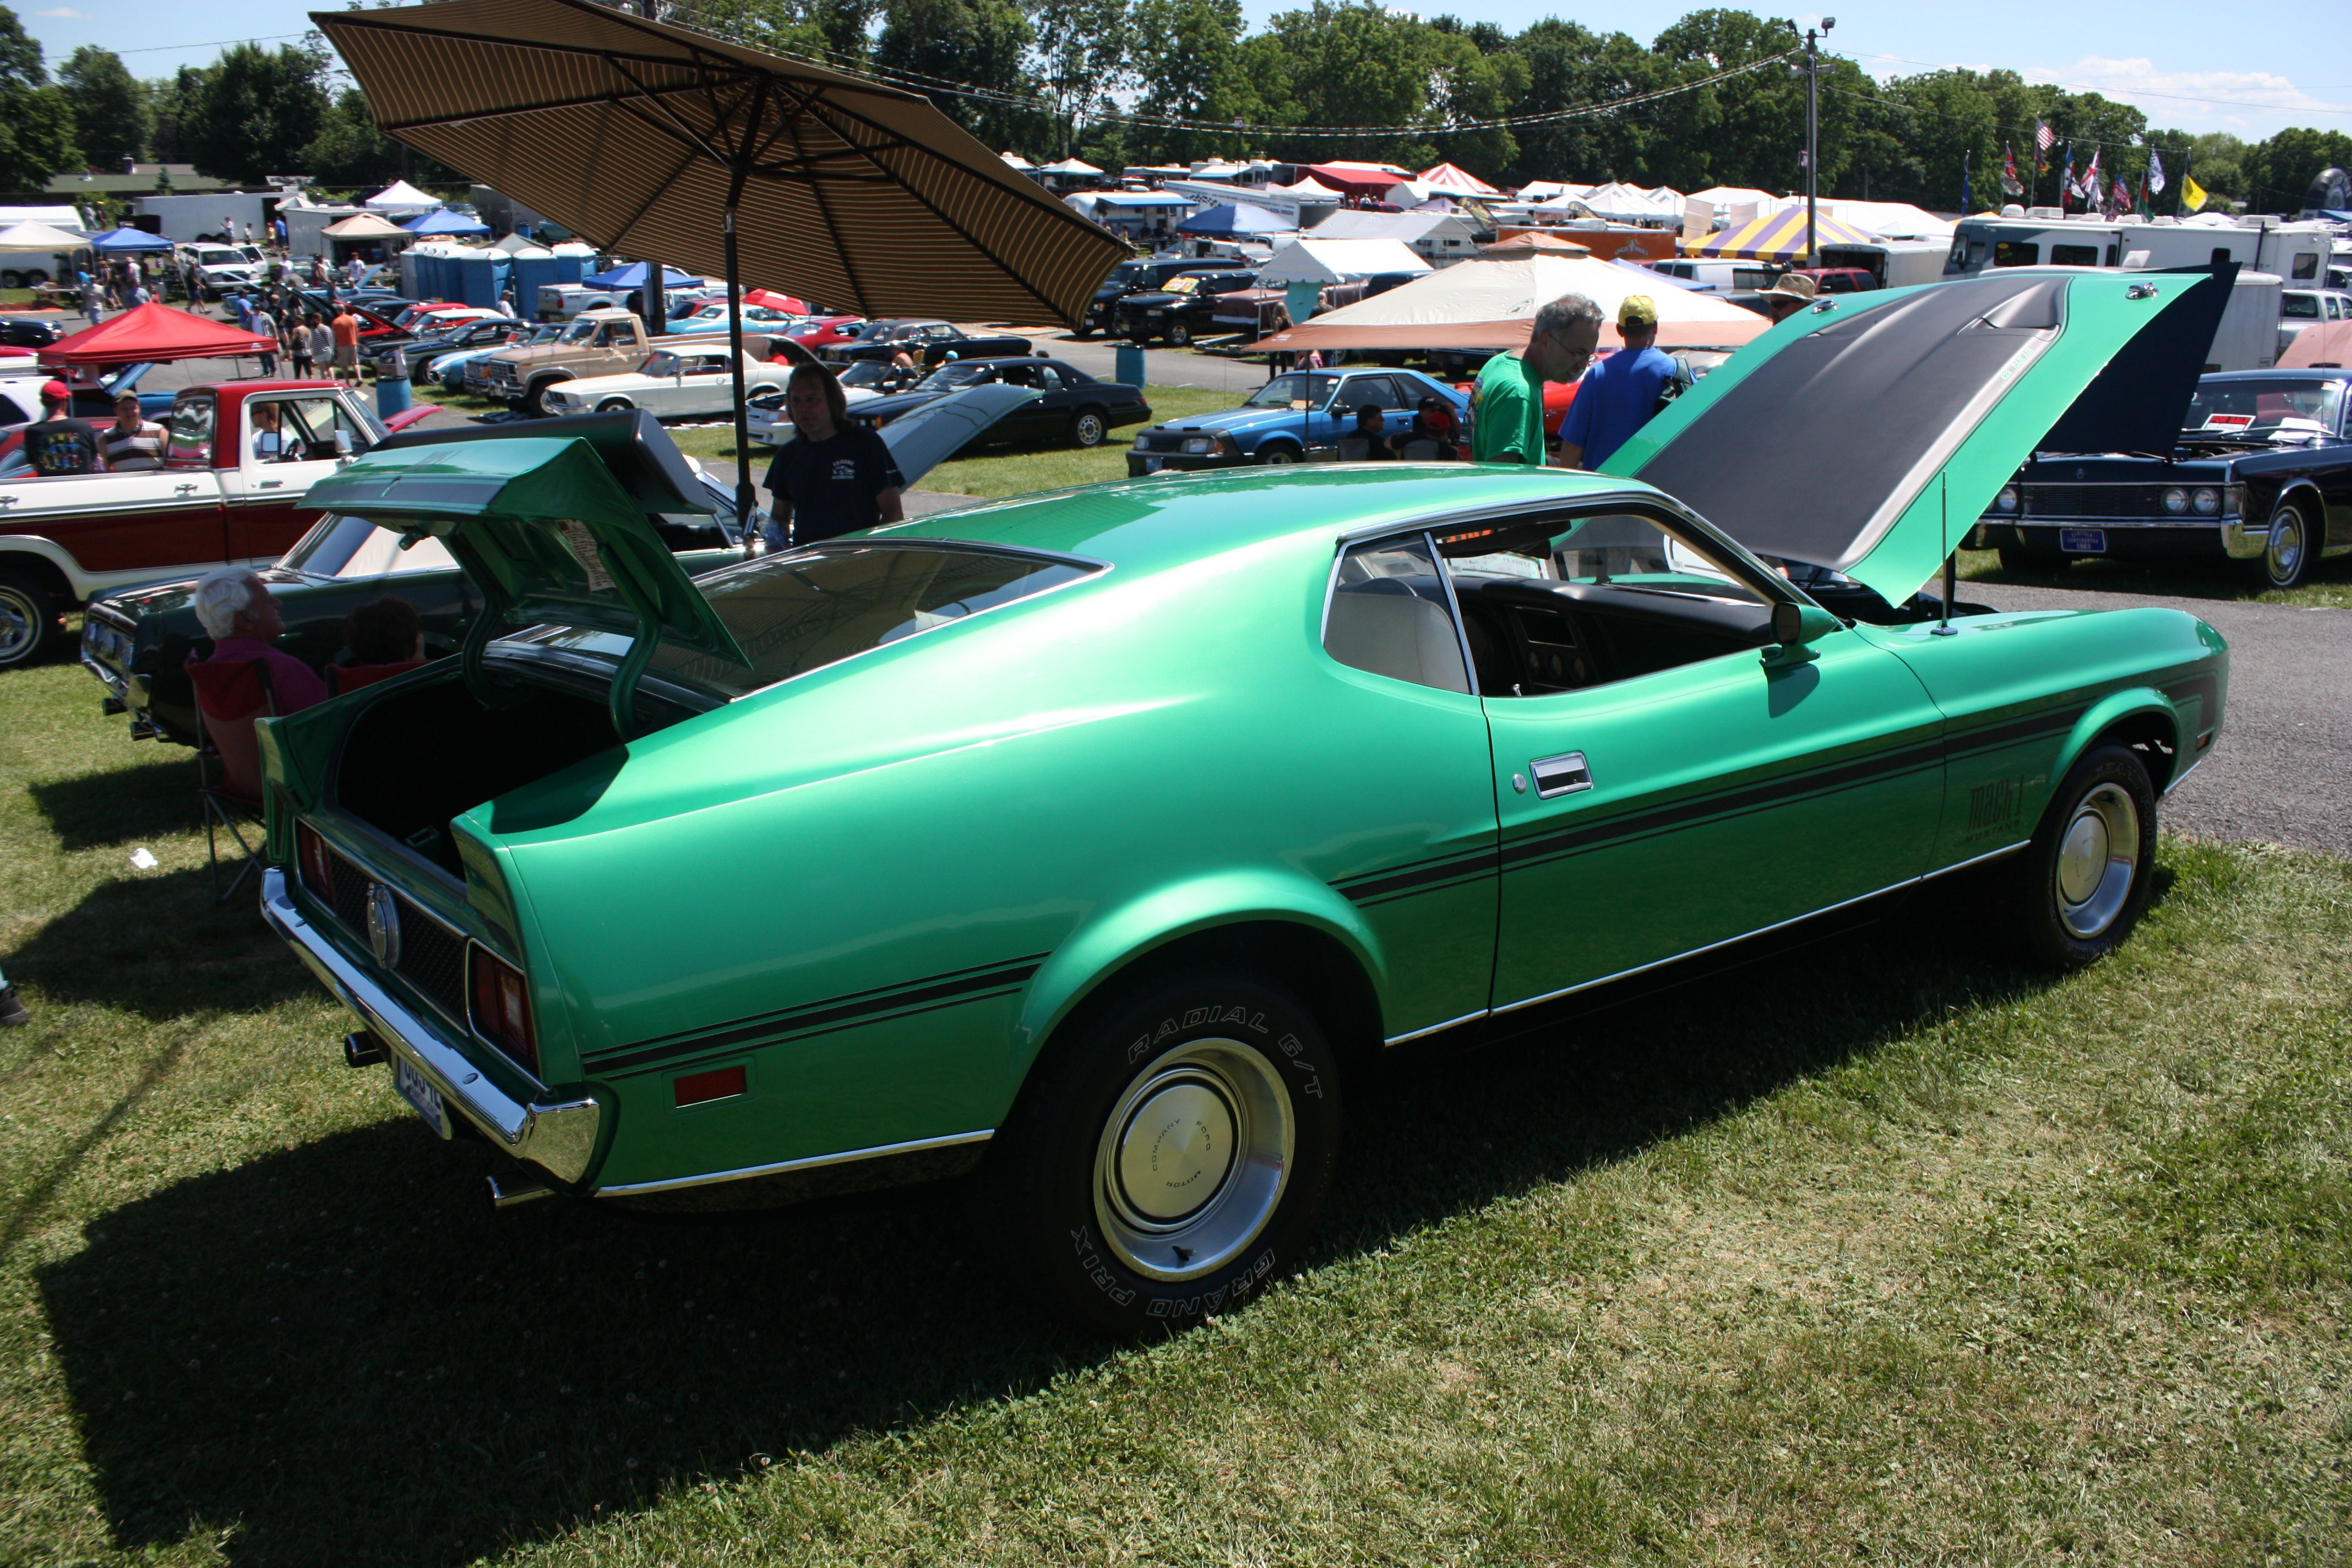 First Ever Cougar To Star At Carlisle Ford Nationals